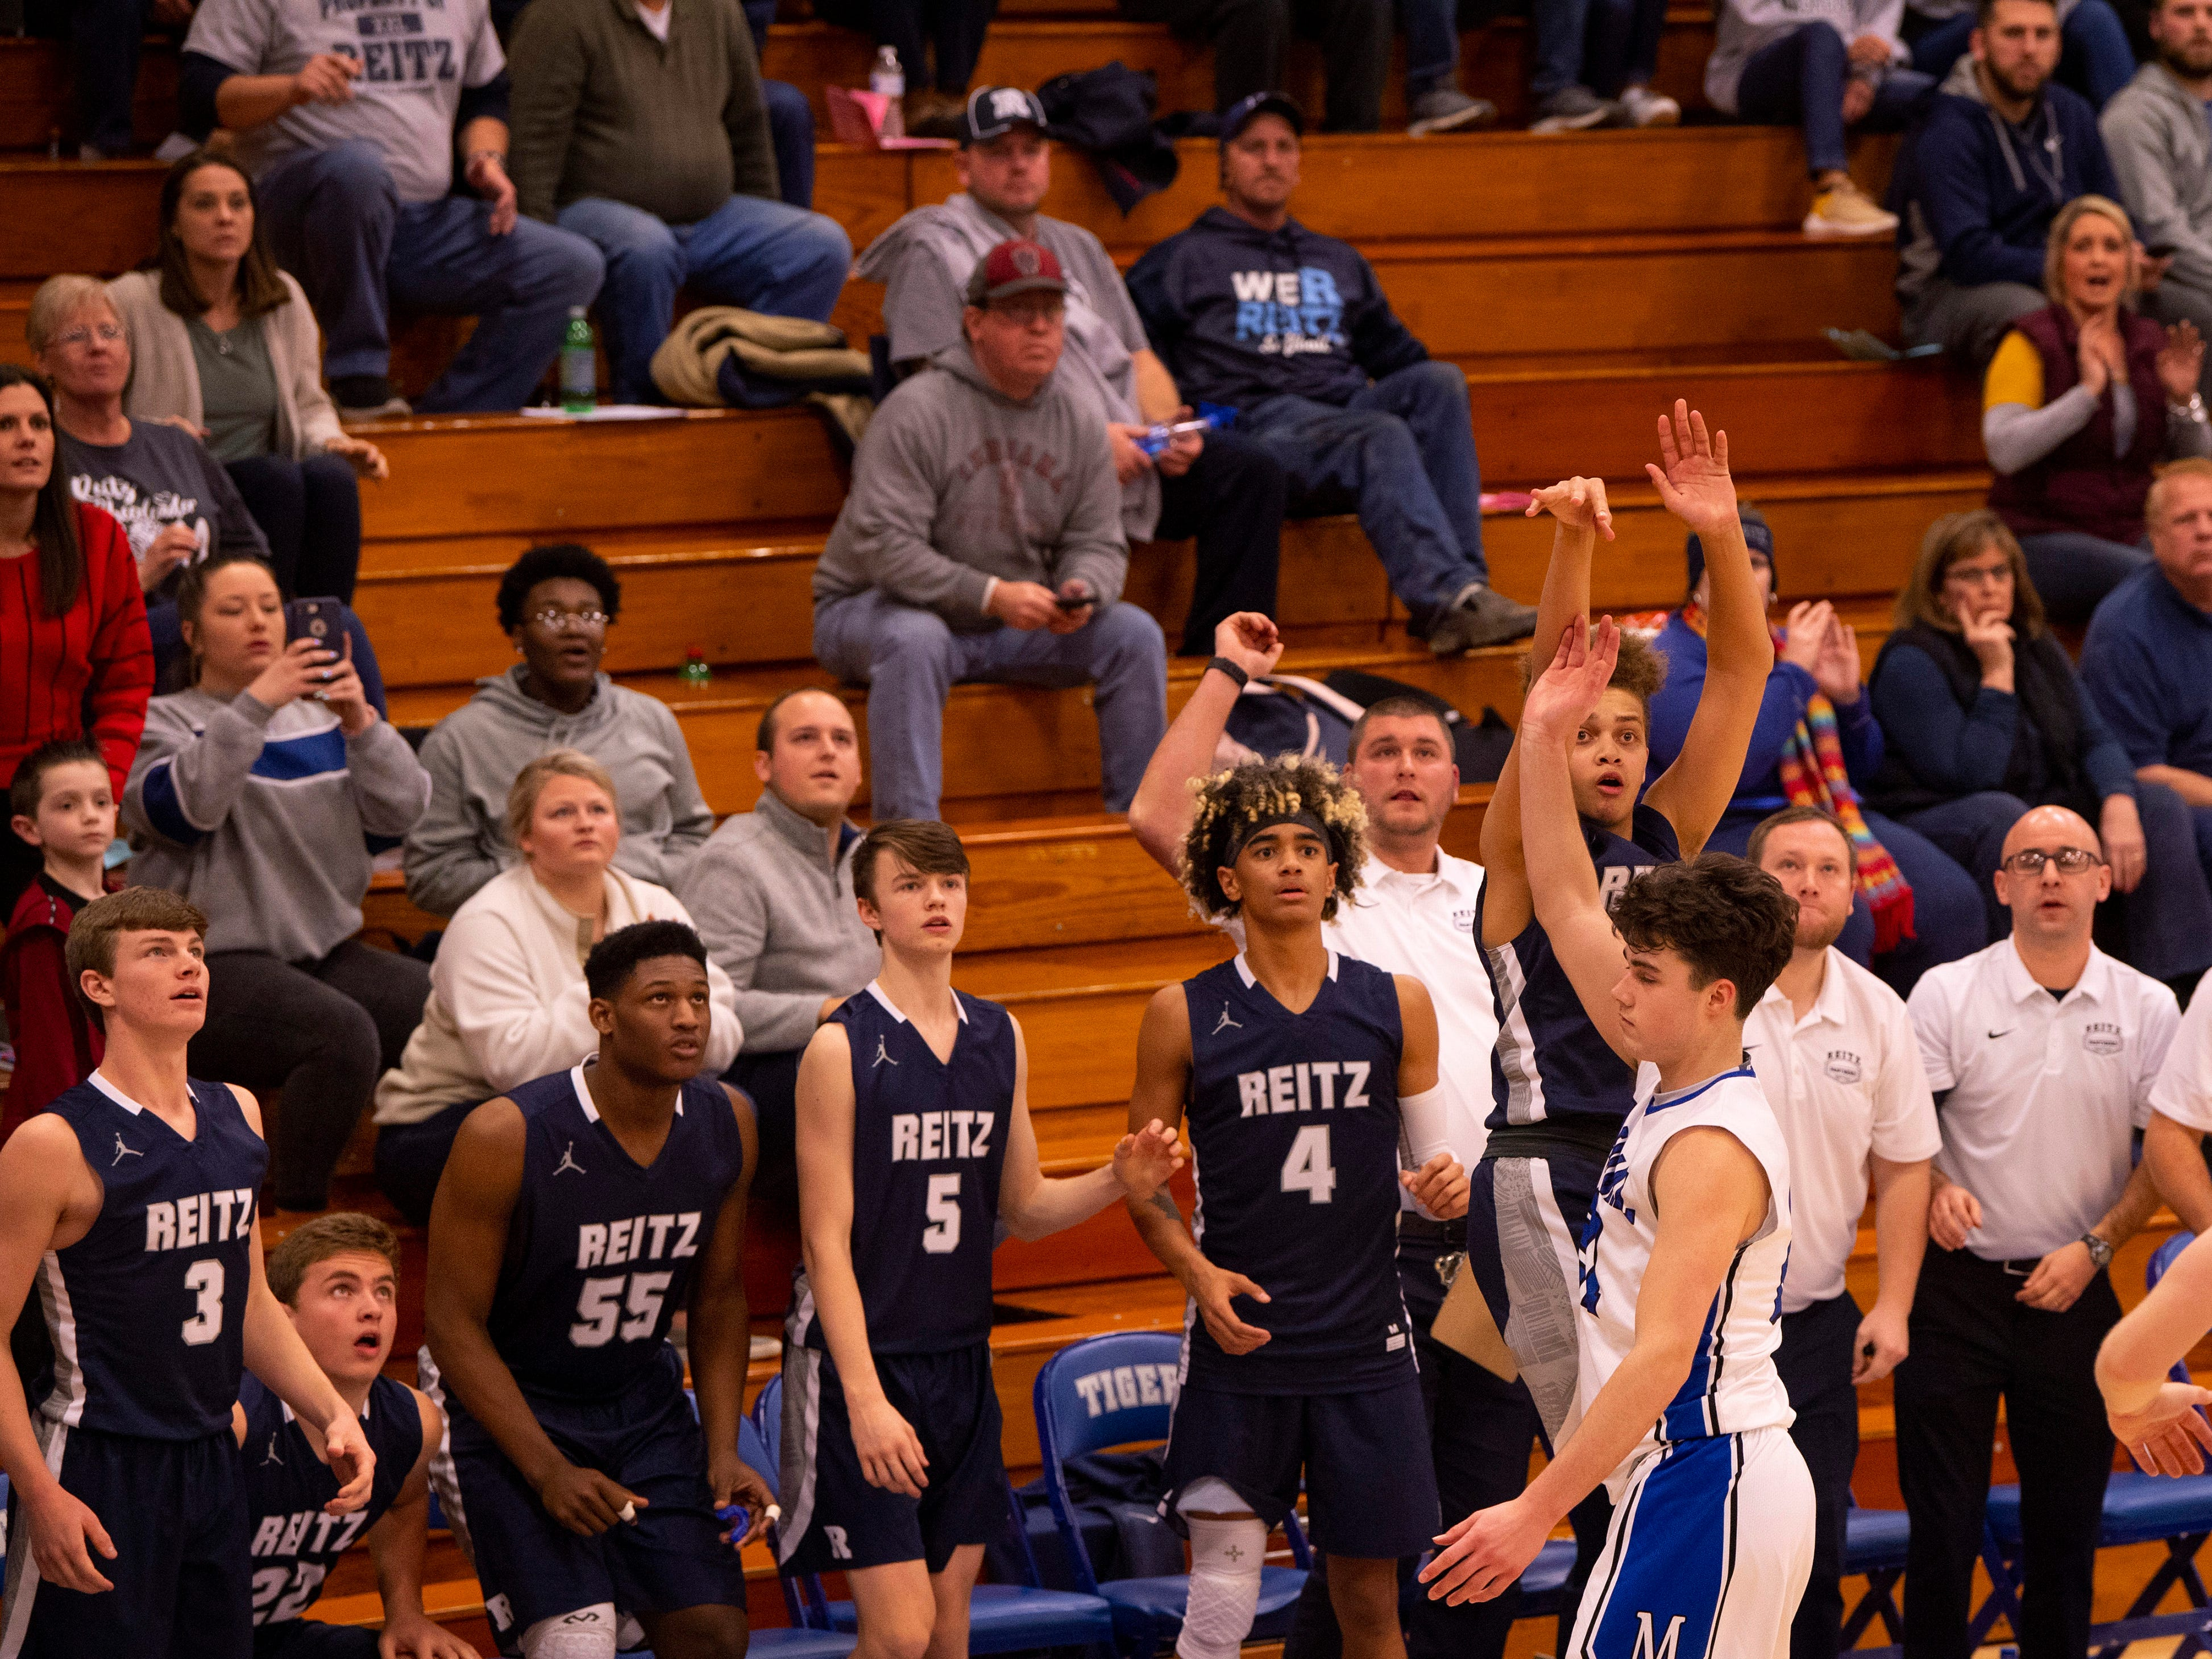 The Reitz bench was the last-second three-pointer attempt by Reitz's Owen Dease(12) against Memorial in the first round of the SIAC Tournament at Memorial High School Tuesday night. Memorial beat Reitz 56-54.